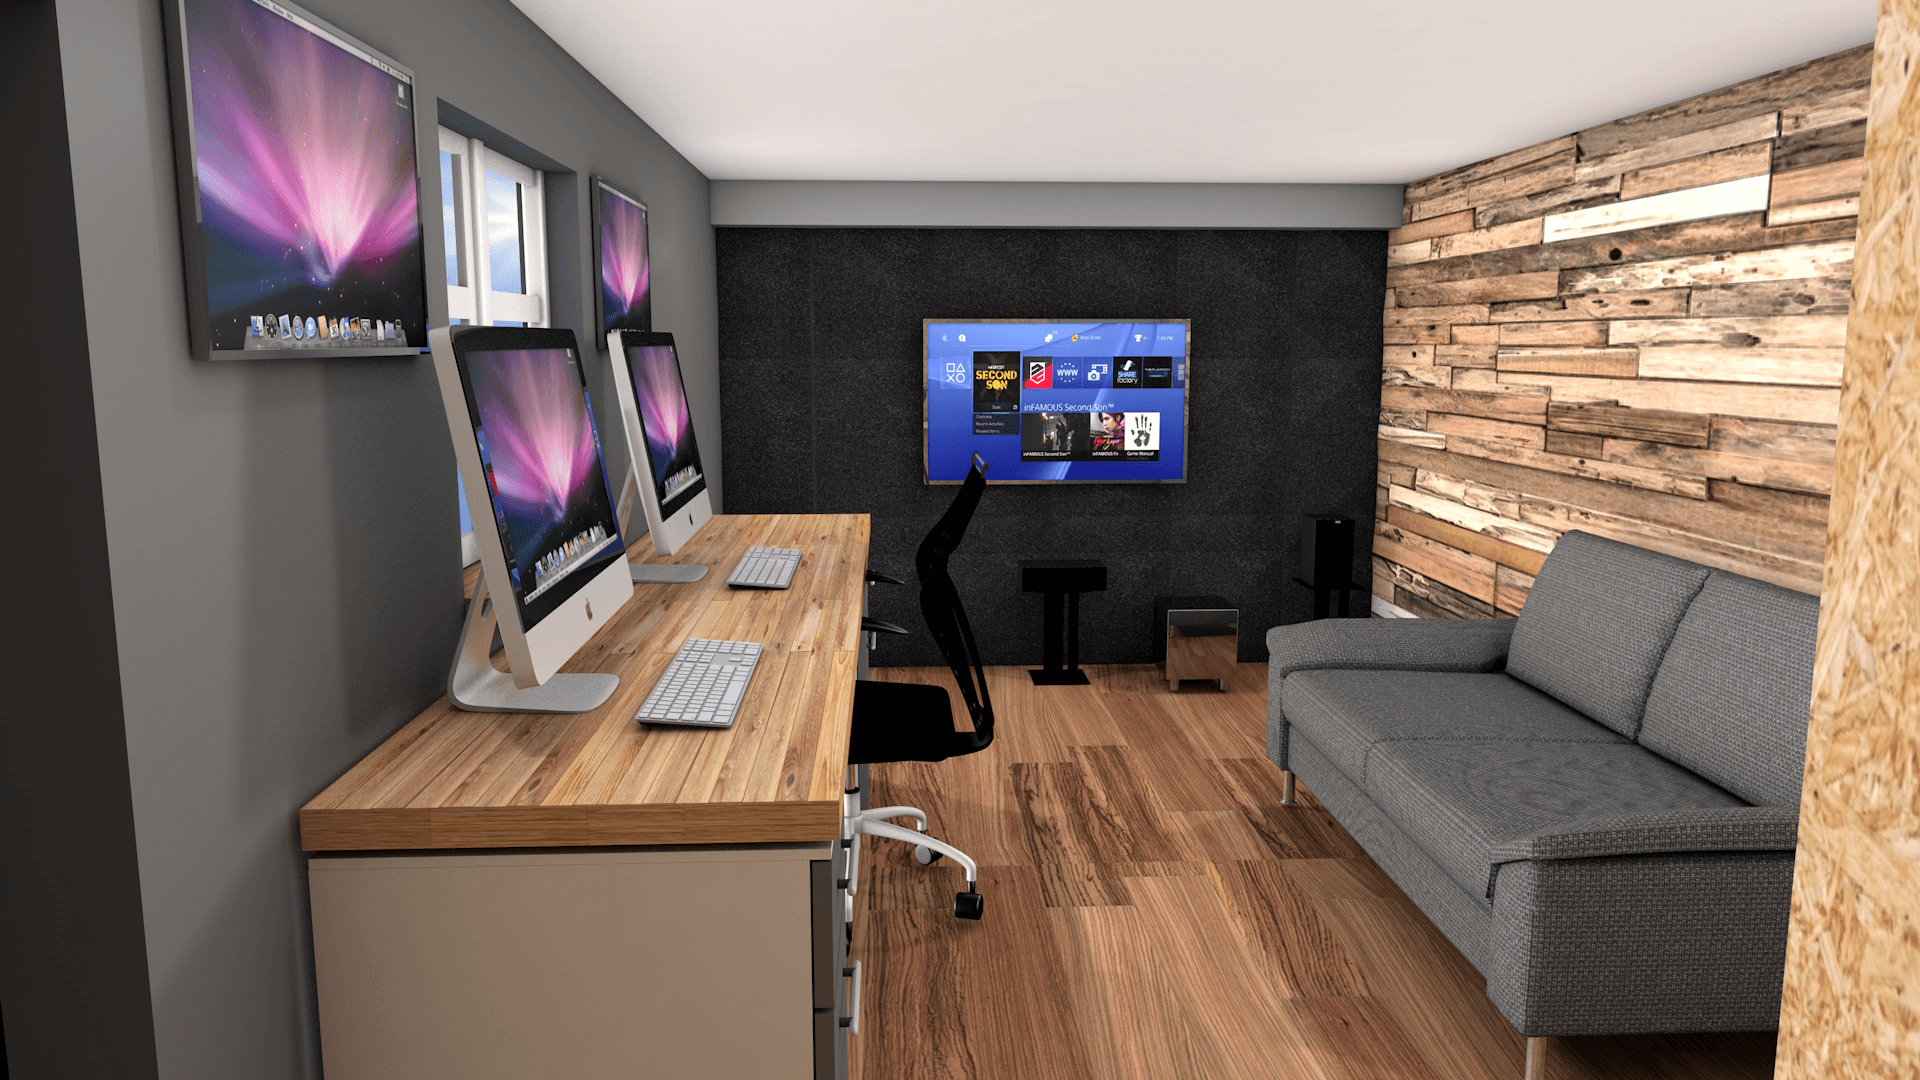 GARAGE MAKEOVER TO A MULTIMEDIA OFFICE